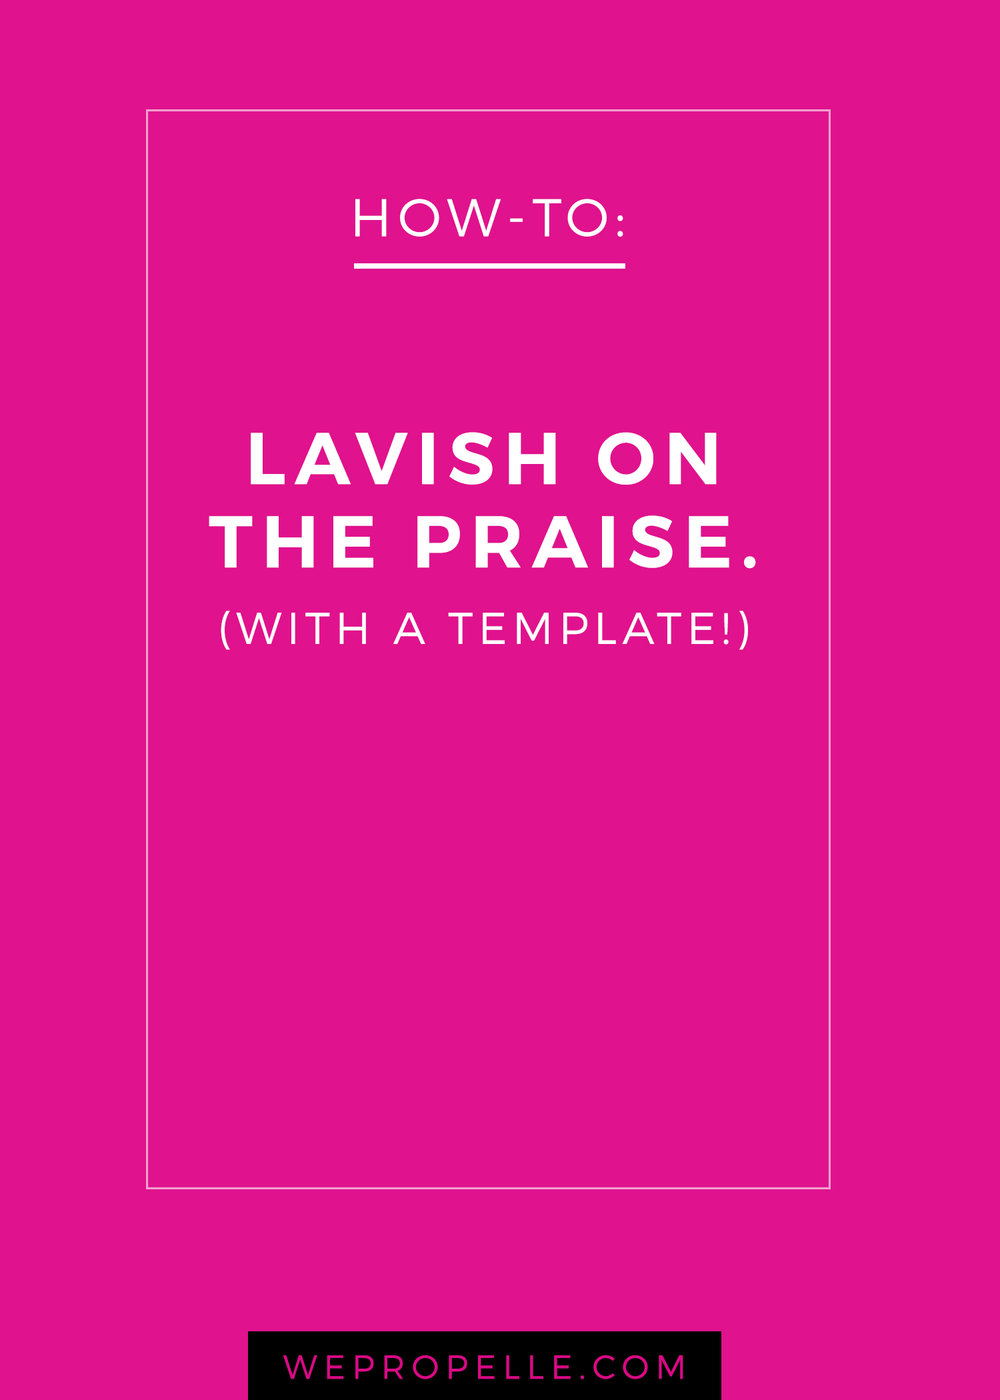 Complimenting someone in a truly authentic and meaningful way is a serious art. And we want to help you hone your craft. Here are three tips (and a template!) to help you craft a killer compliment and lavish on the praise. | wepropelle.com